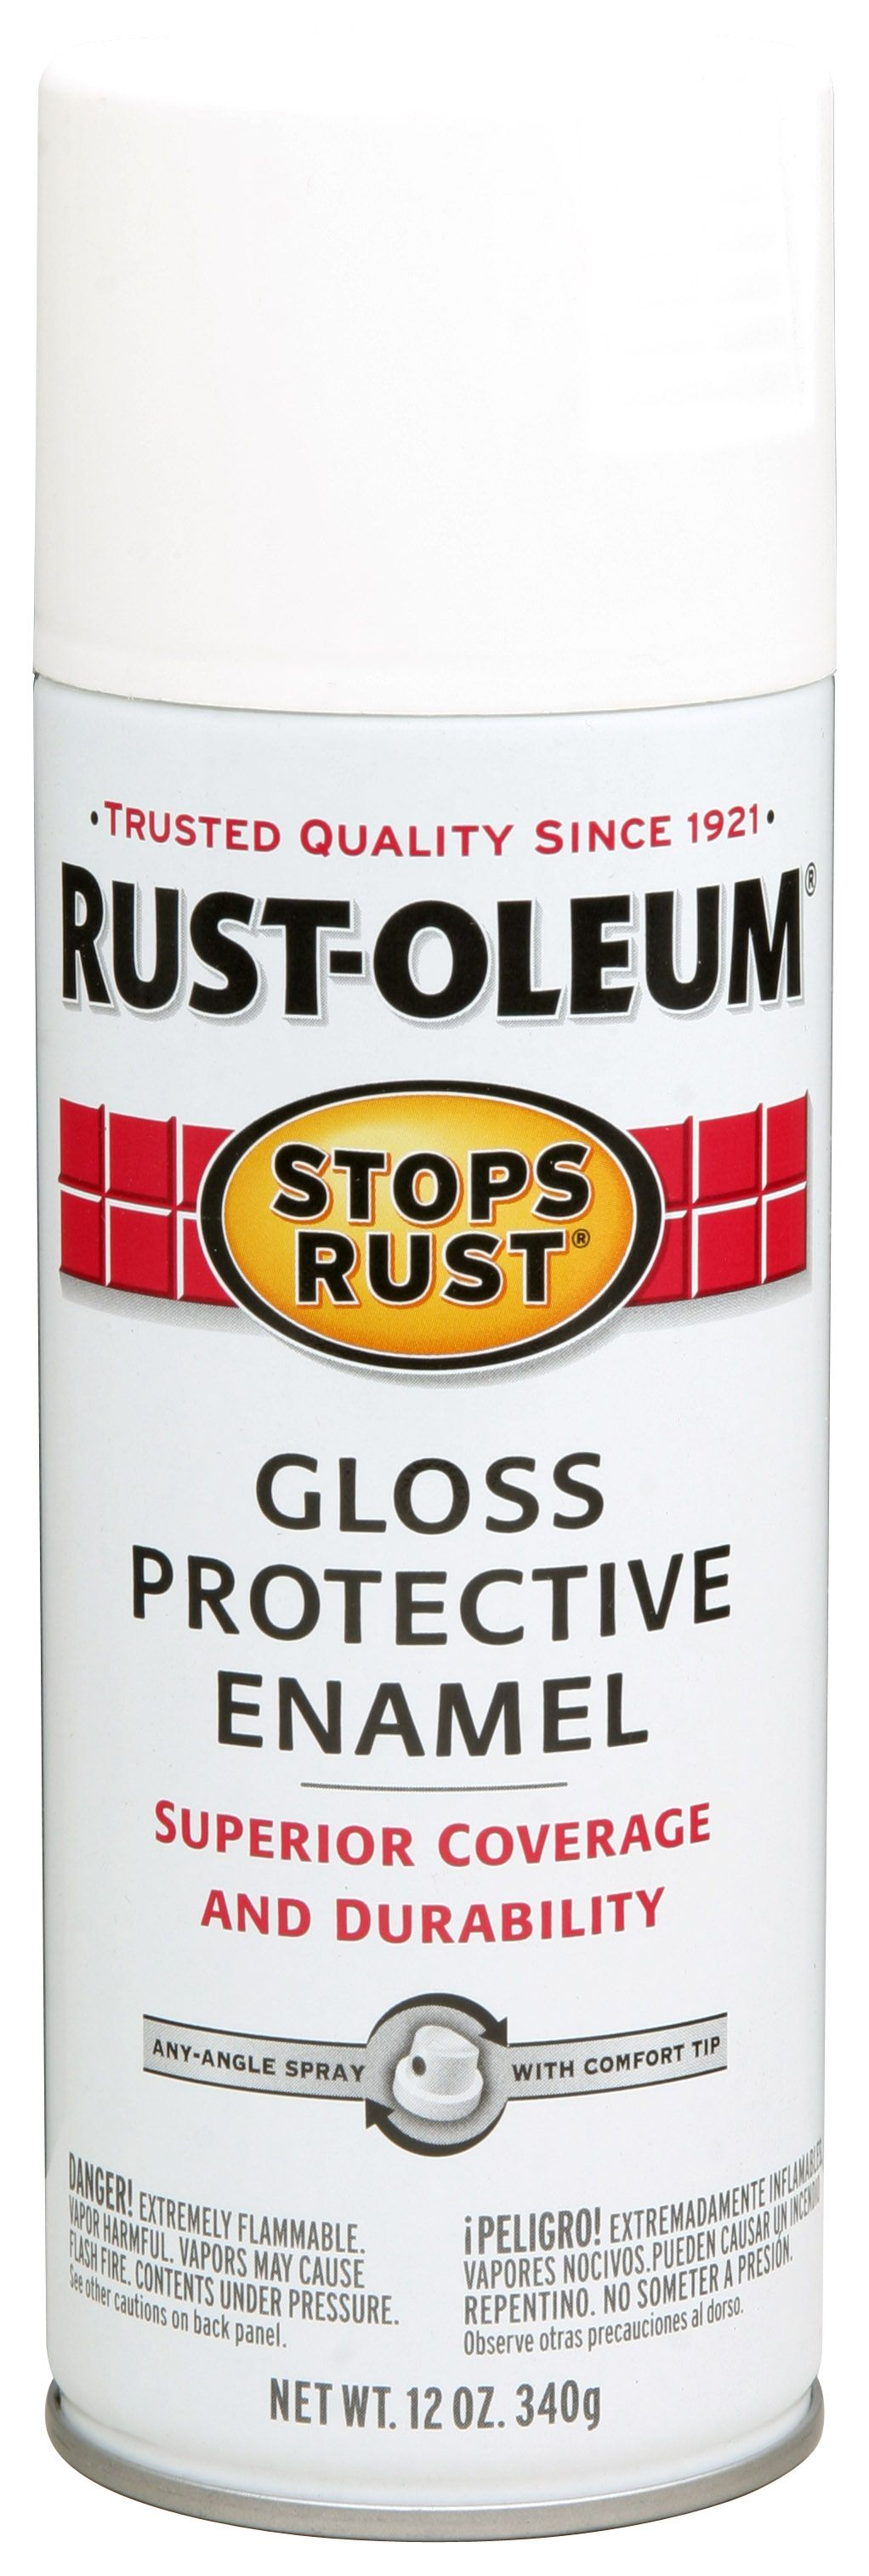 7792830 RUST-OLEUM Paint Used On Metal/ Wood/ Concrete/ Masonry Which